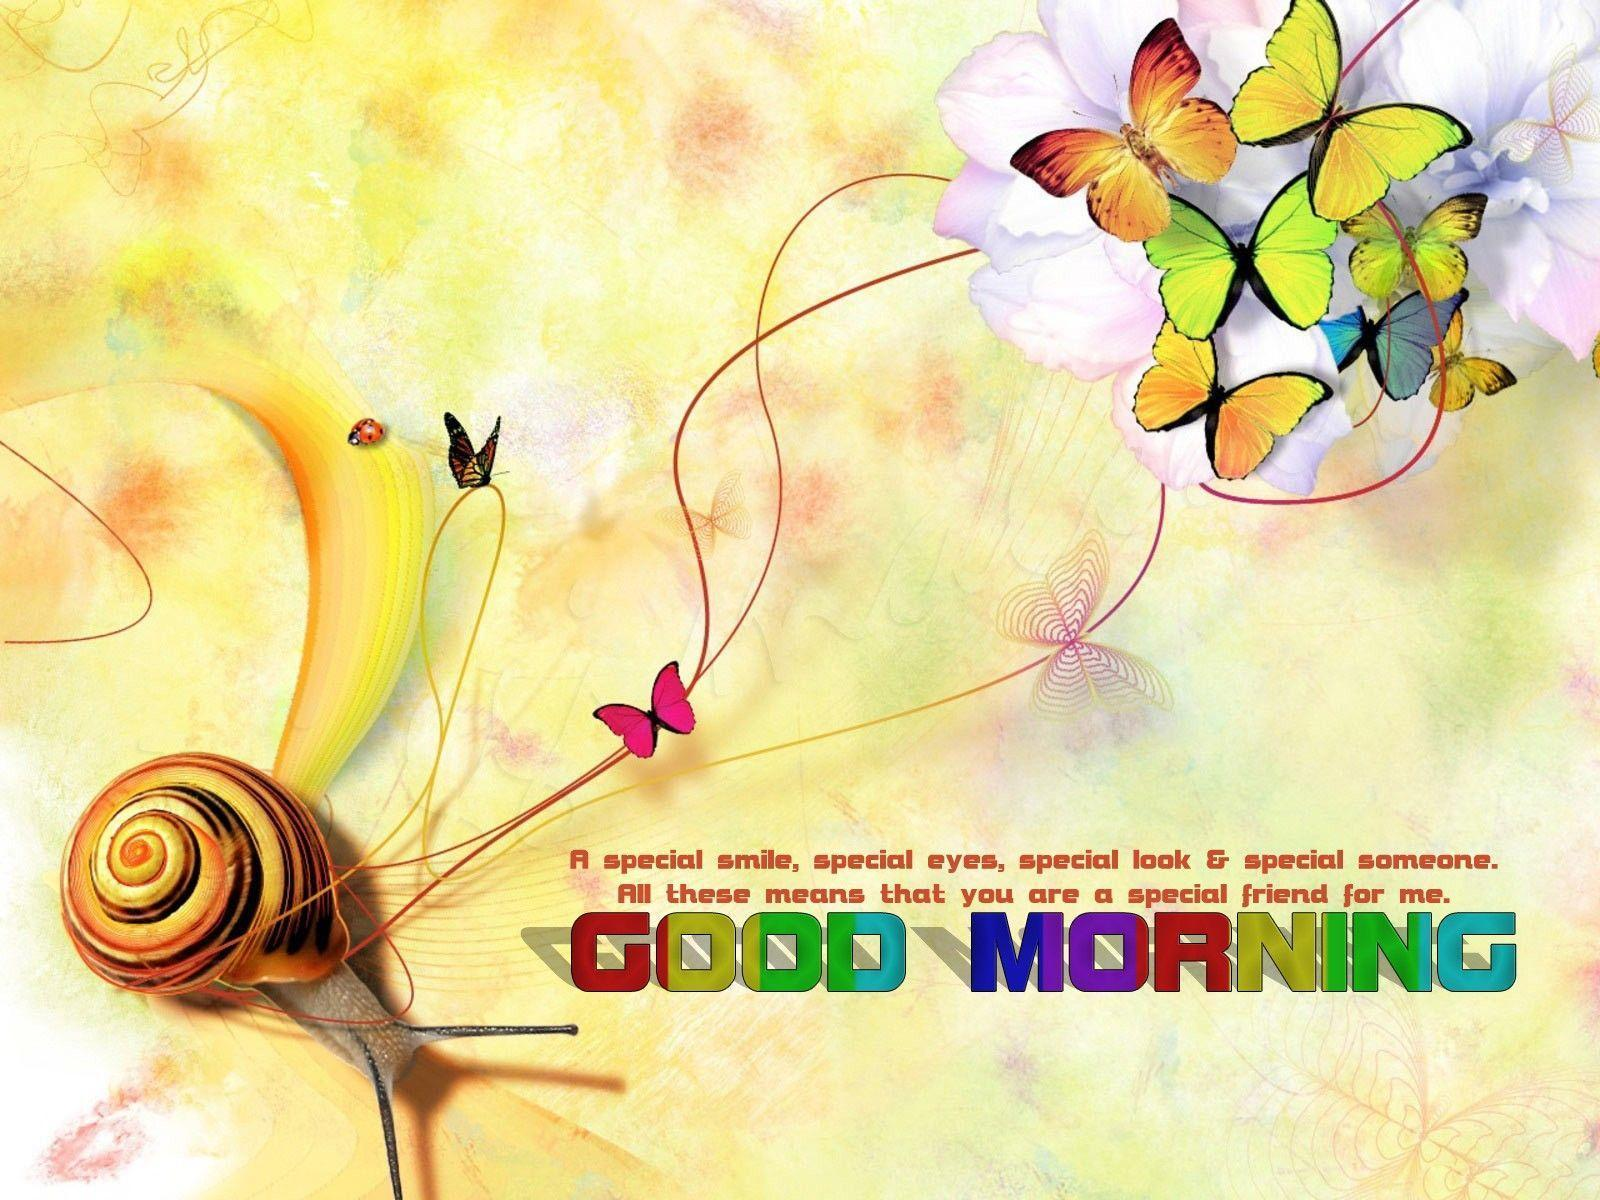 Good Morning Artistic Images : Good morning wishes wallpapers wallpaper cave